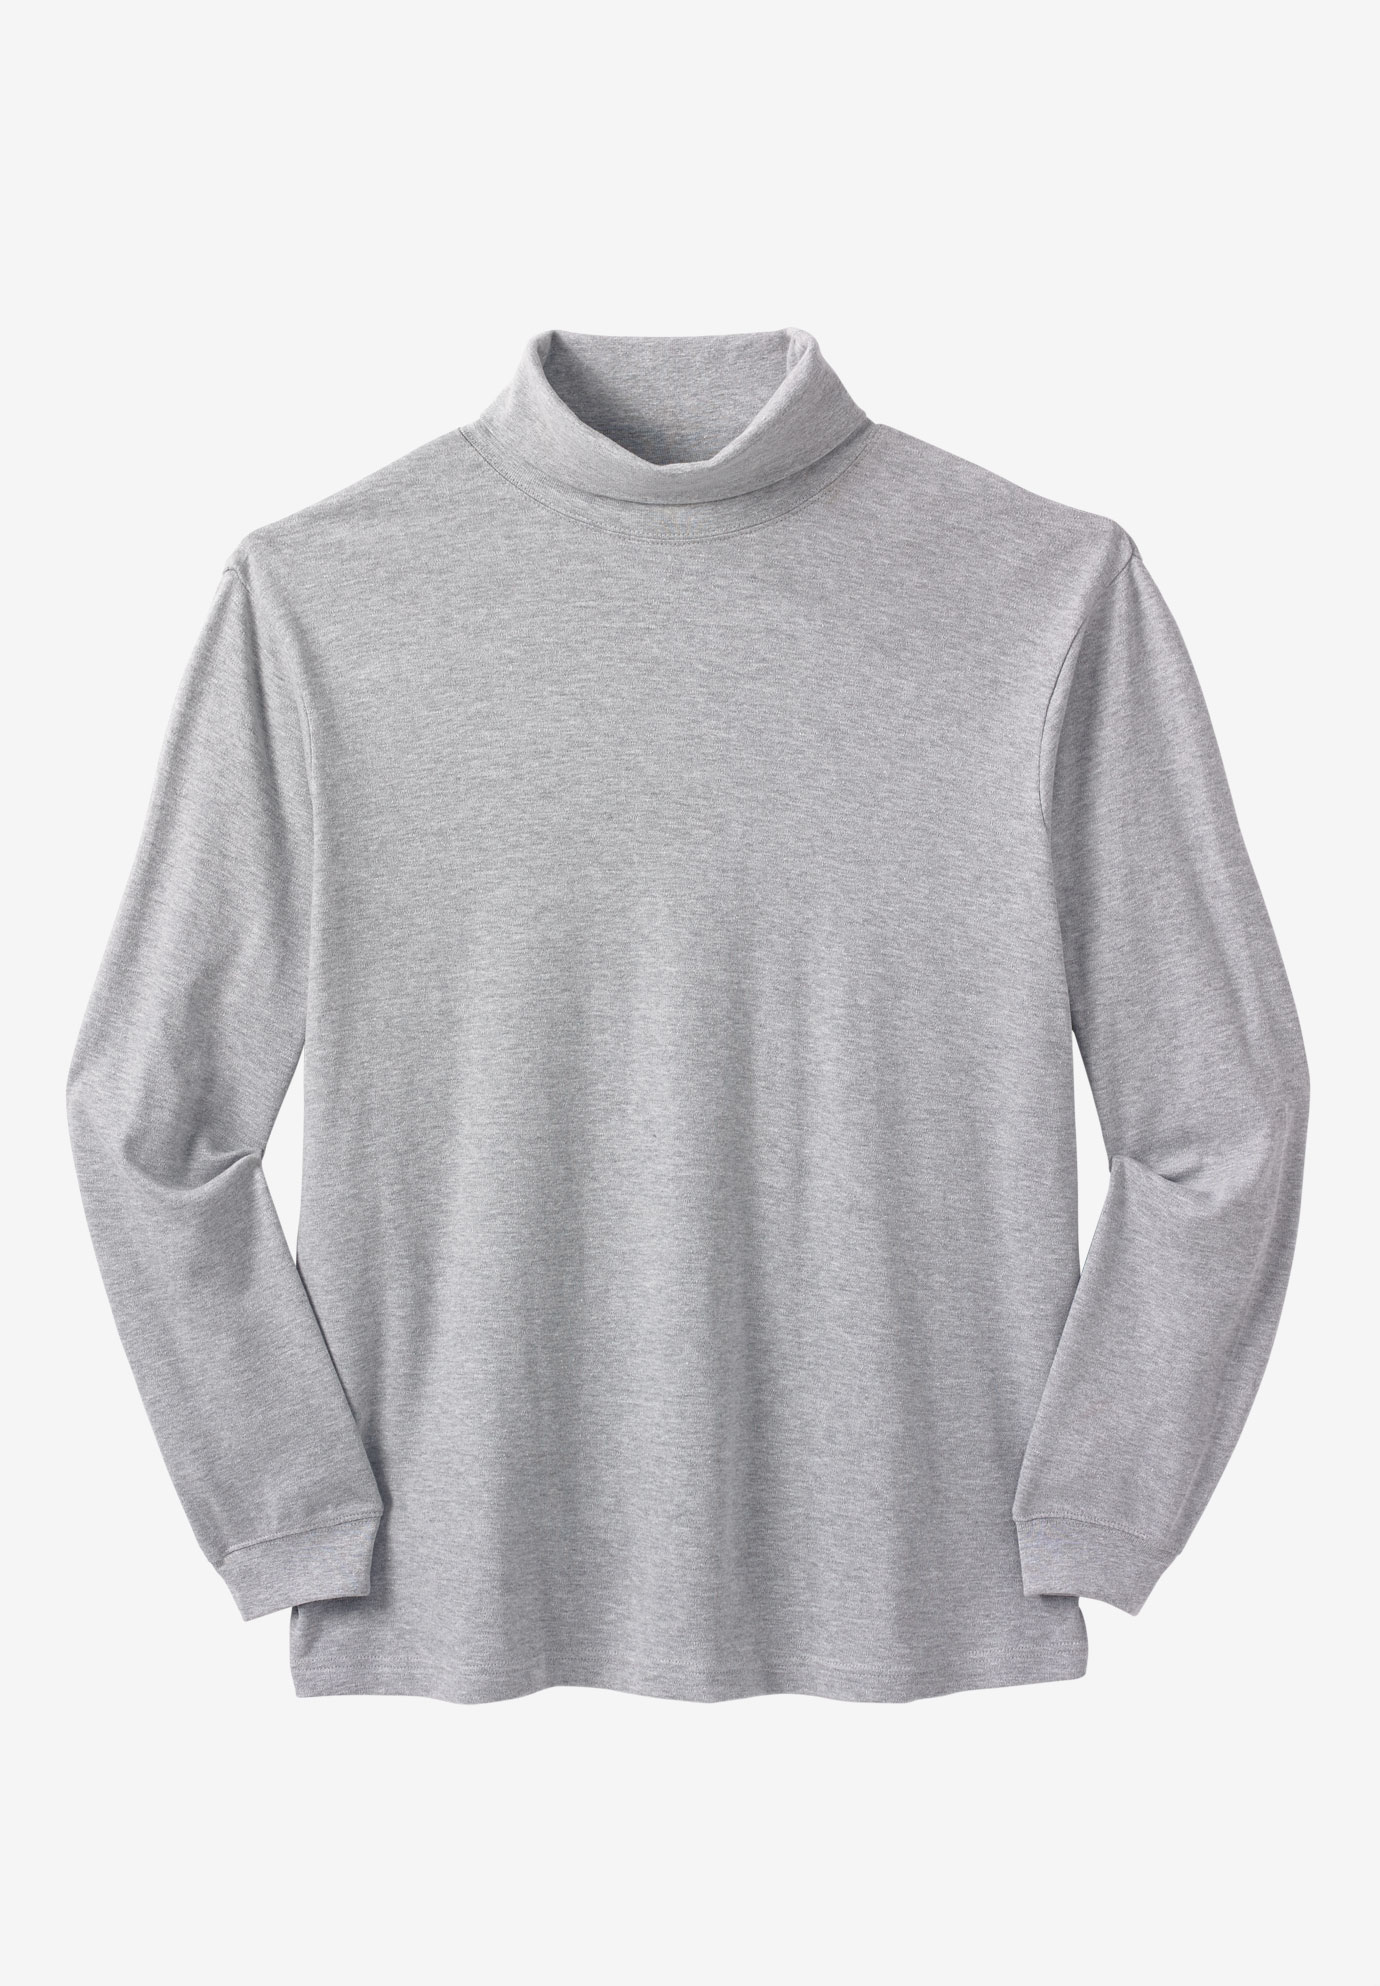 Turtleneck Long-Sleeve Tee,